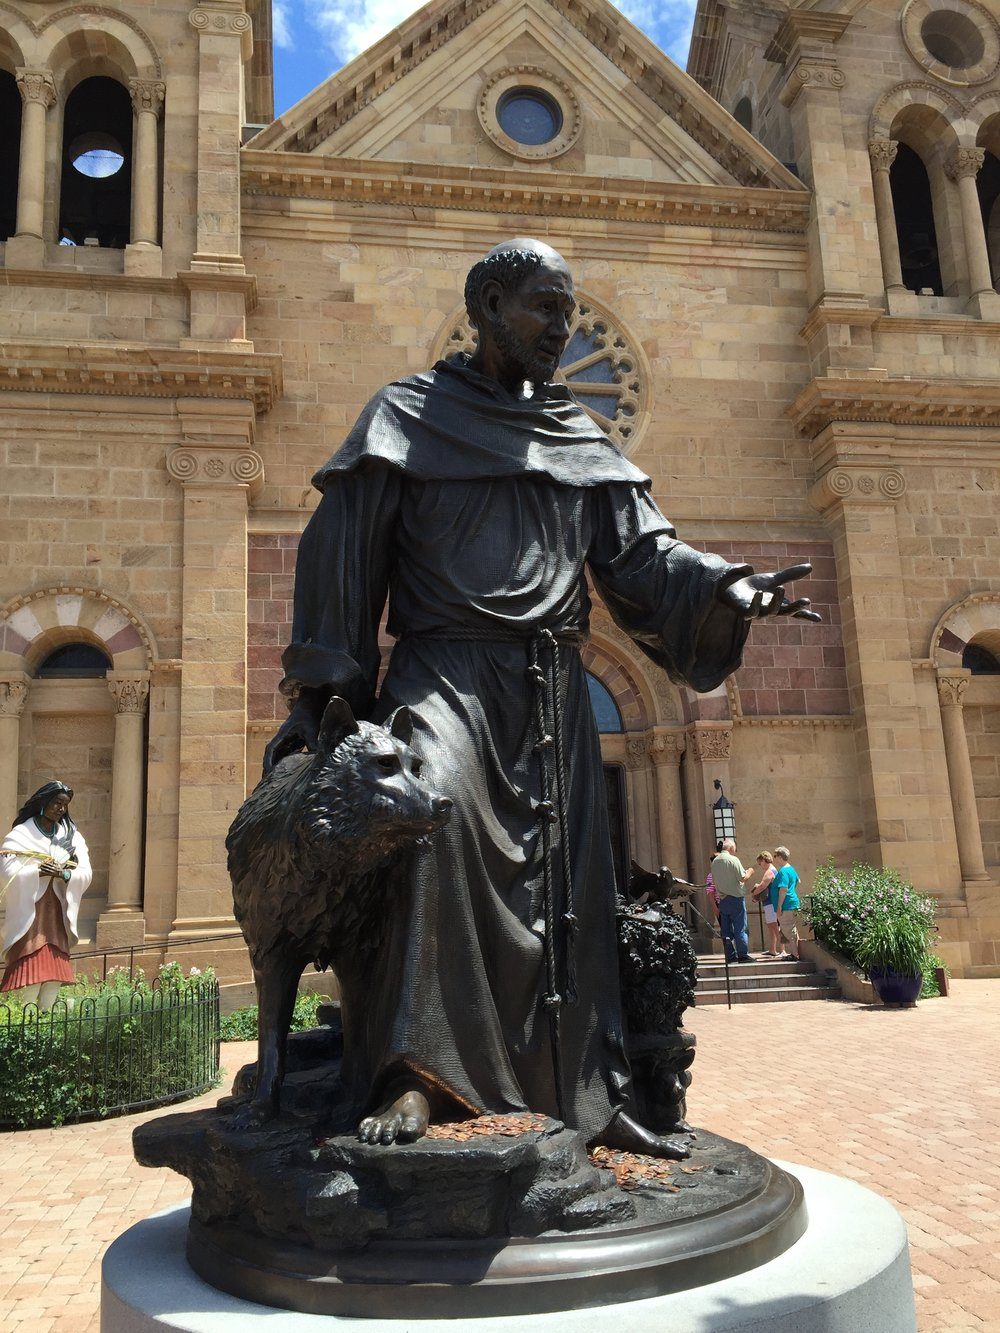 I took this picture of St. Francis and the wolf of Gubbio in Santa Fe outside The Cathedral Basilica of St. Francis of Assisi. St. Kateri Tekakwitha (the first Native American saint) is in the background.